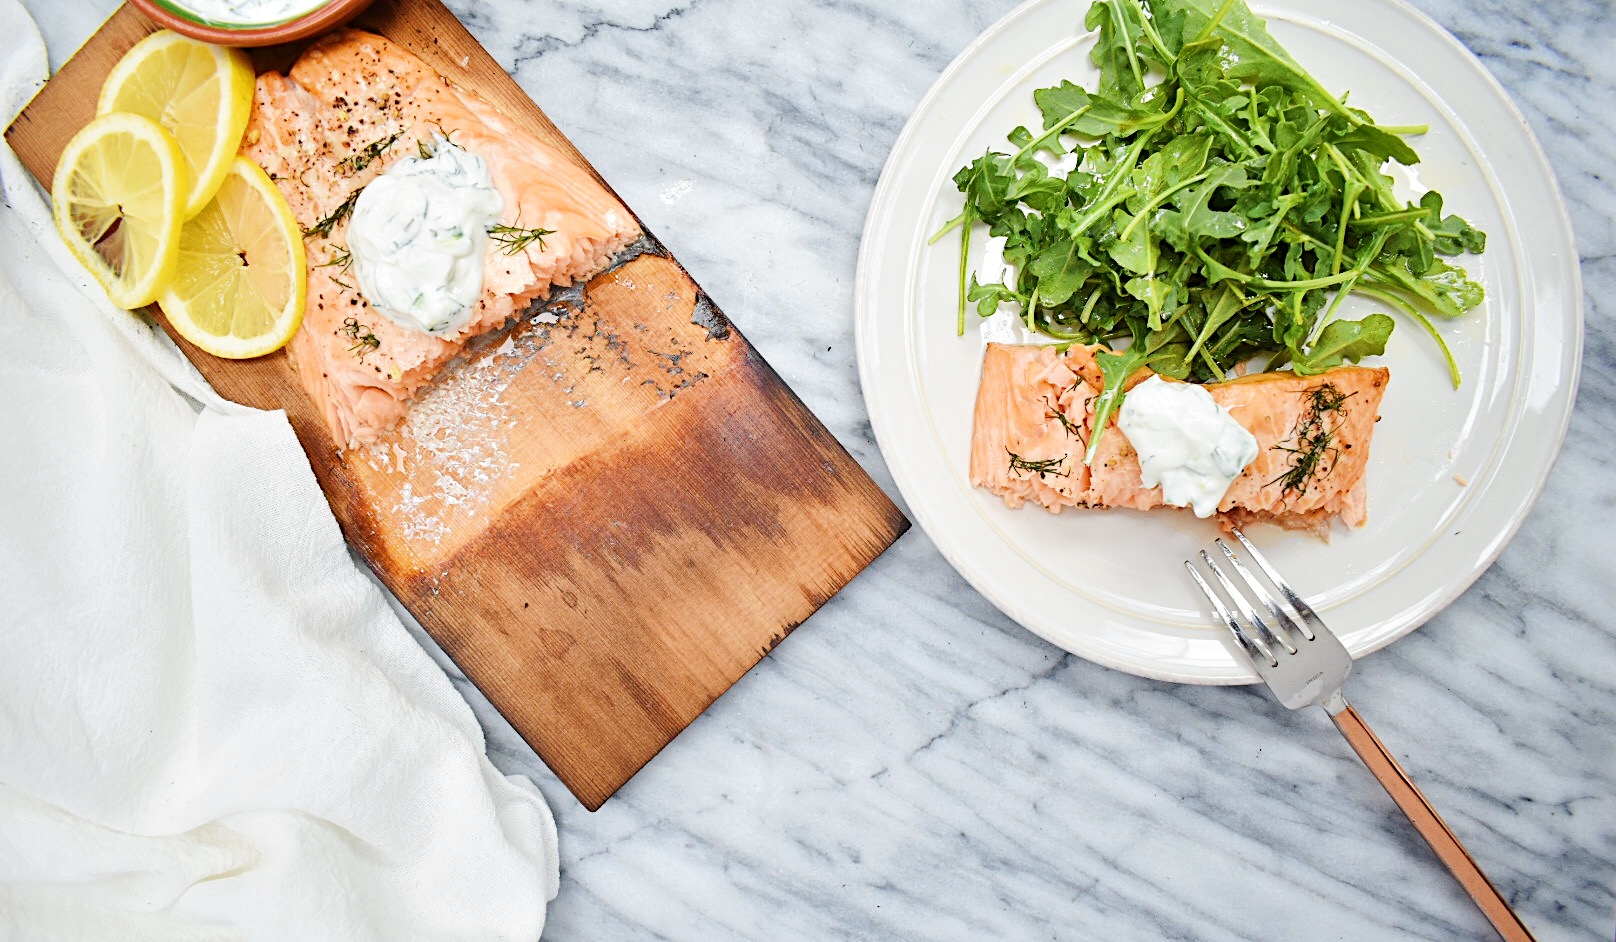 grilled salmon with yogurt sauce on cedar plank with one slice cut out and on white plate with arugula salad